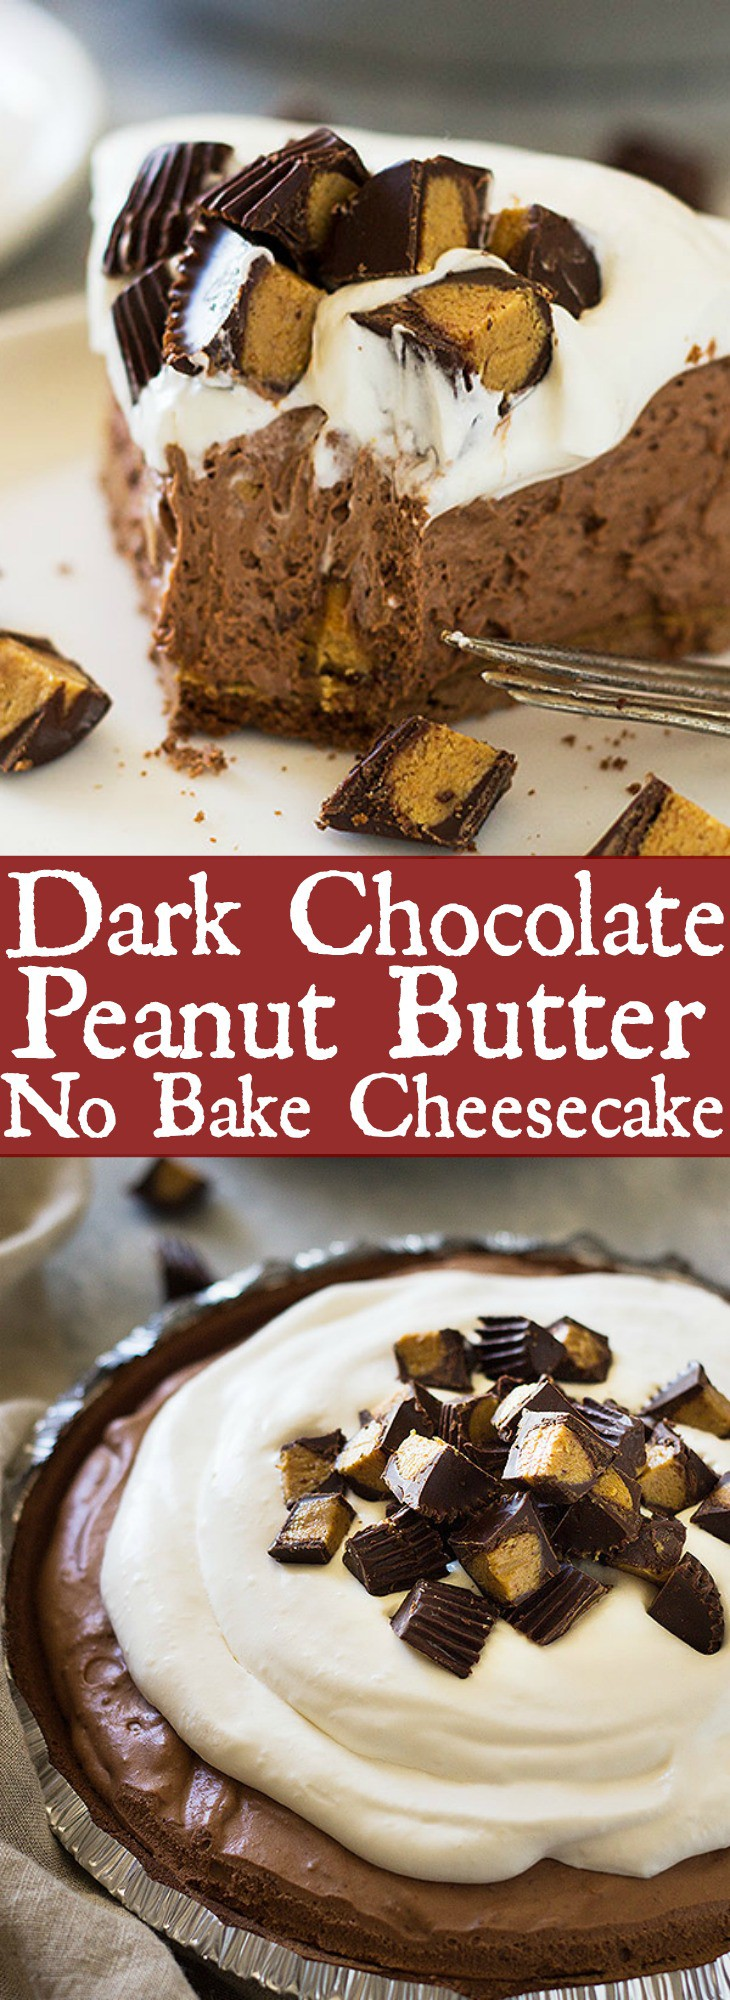 This Dark Chocolate Peanut Butter No Bake Cheesecake is rich, ultra creamy and decadent! | www.countrysidecravings.com